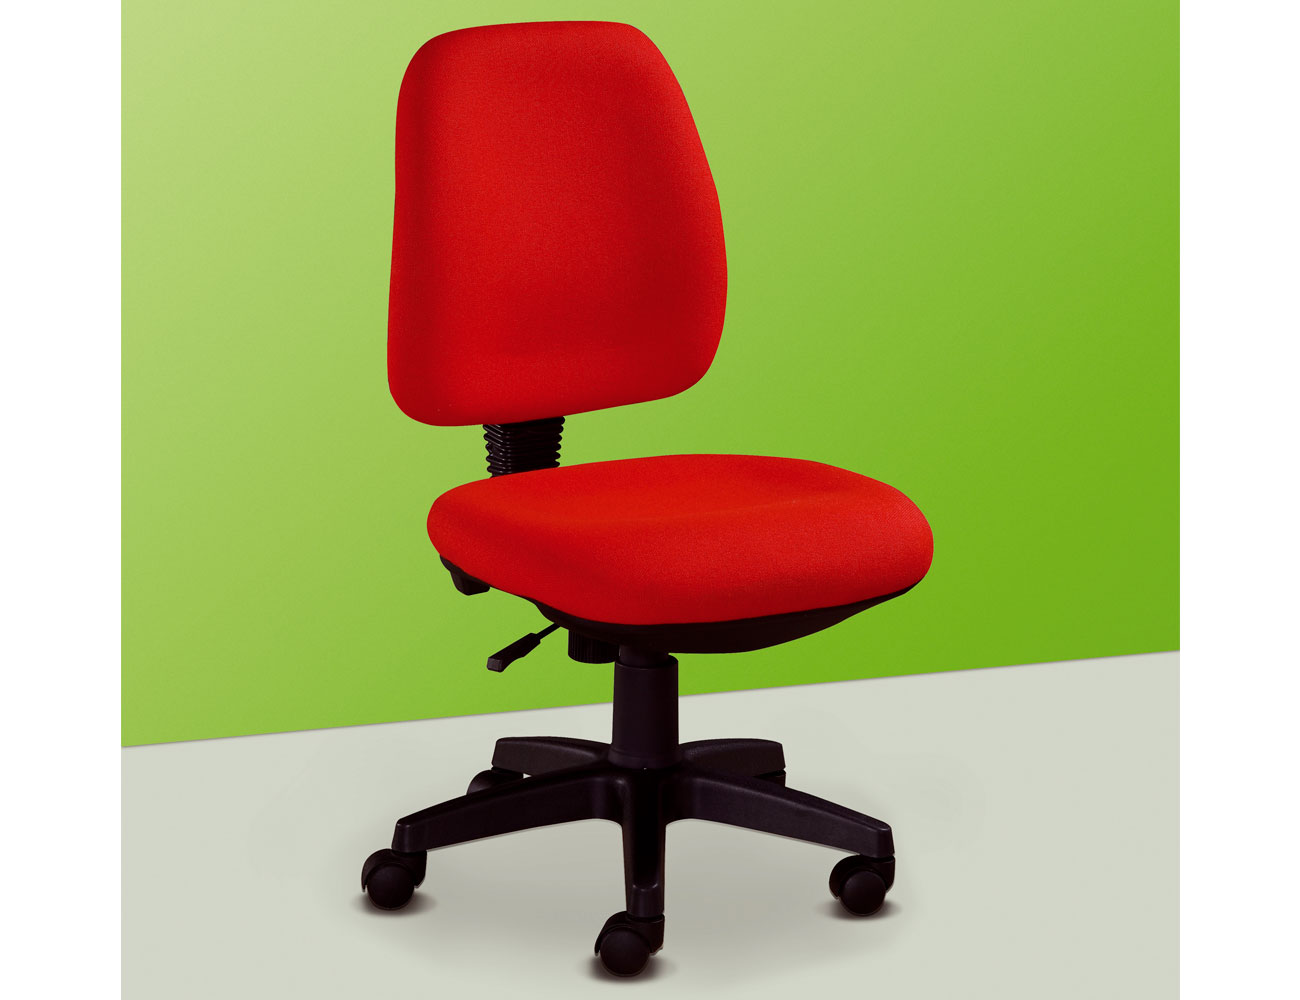 Silla de oficina elevable en color rojo 19858 factory for Muebles sillas oficina